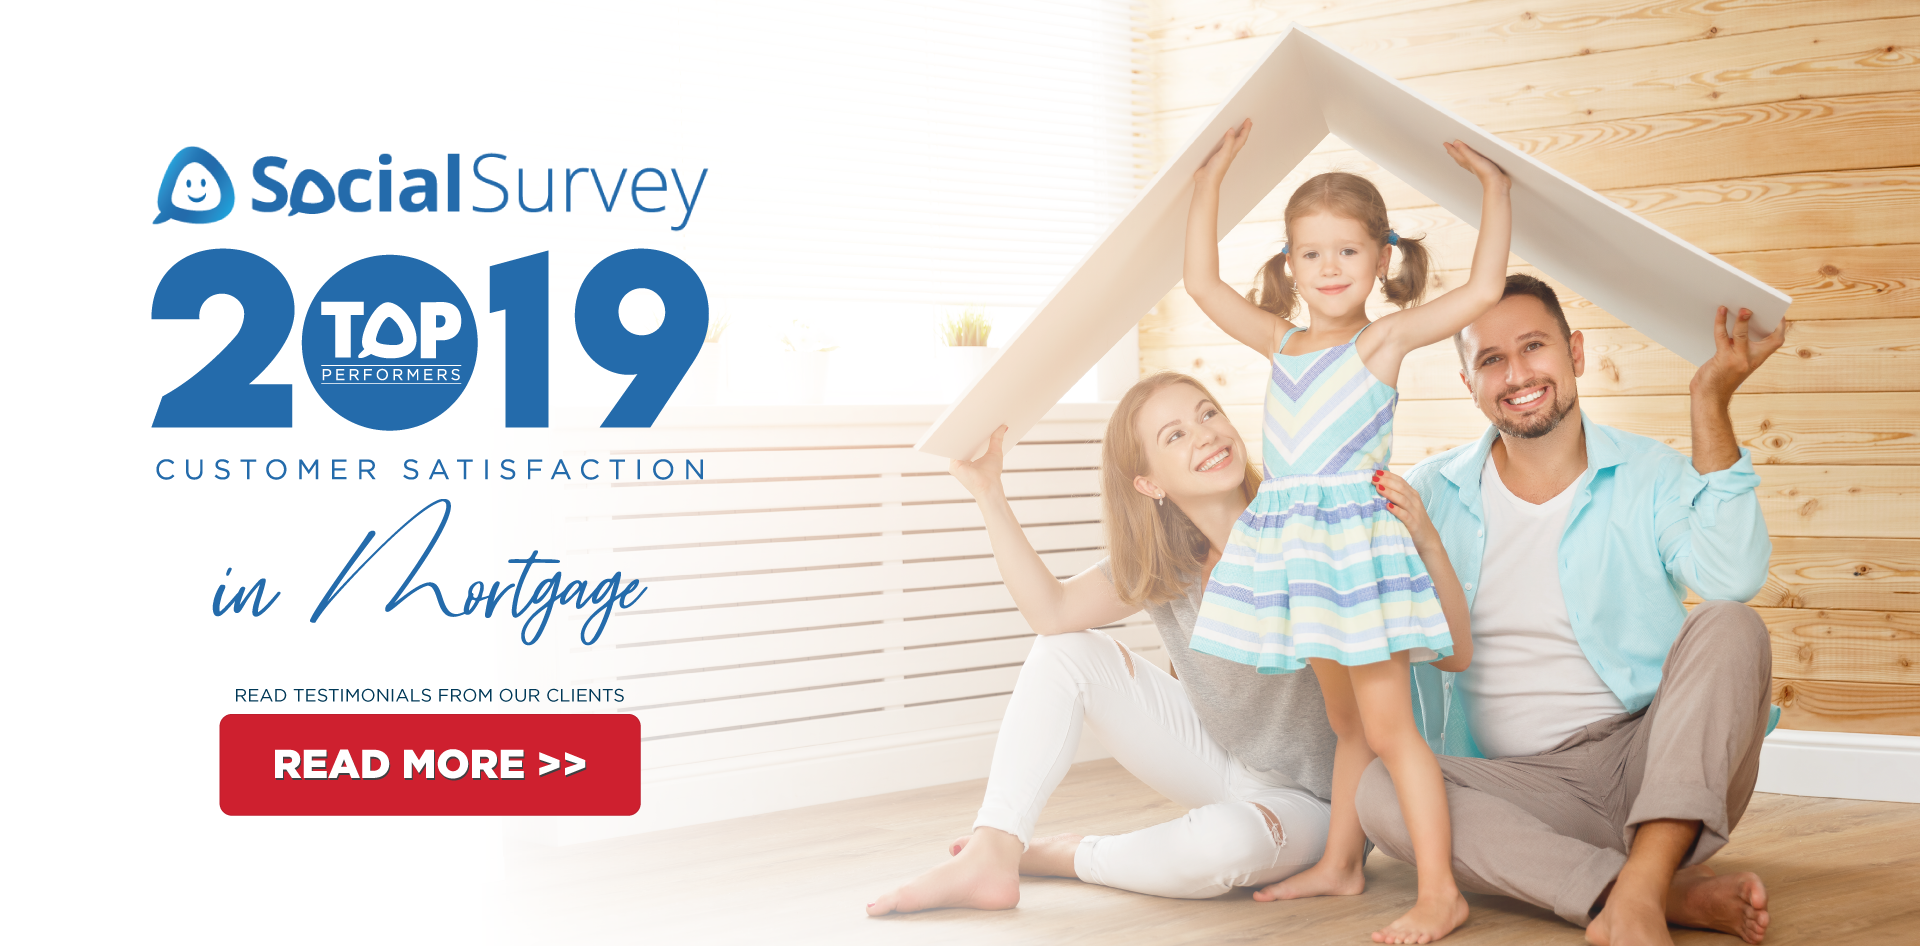 AmCap-Home-Loans-Top-Mortgage-Company-Social-Survey-2019